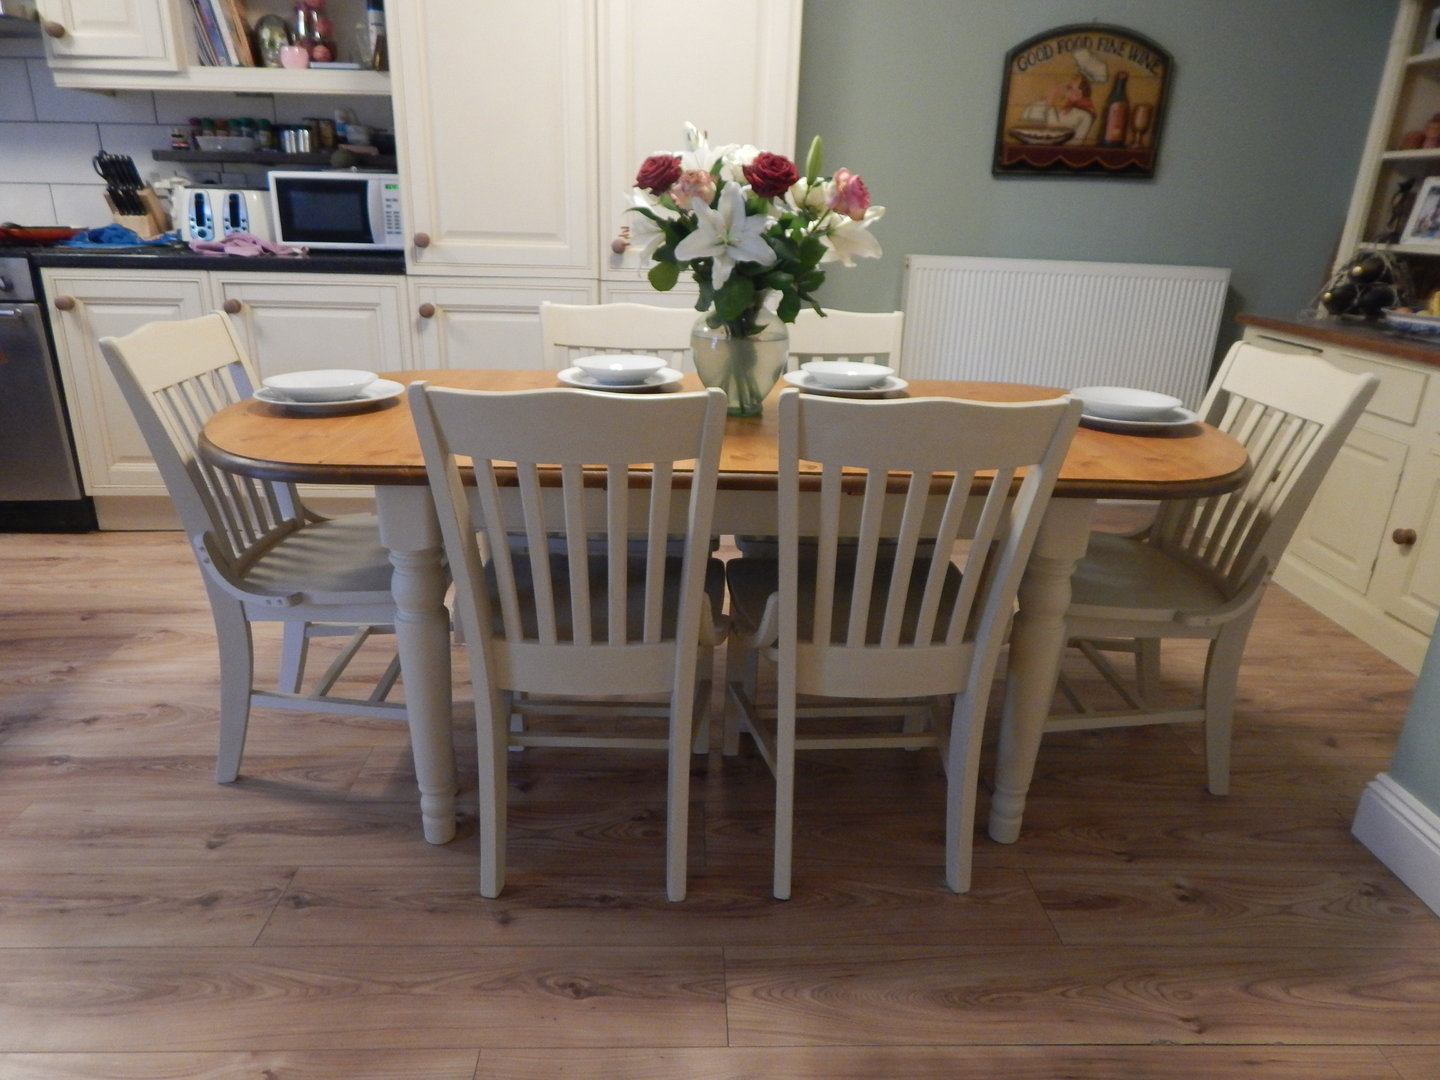 Shabby chic ducal pine extending dining table 6 chairs sold moonstripe - Shabby chic dining table sets ...